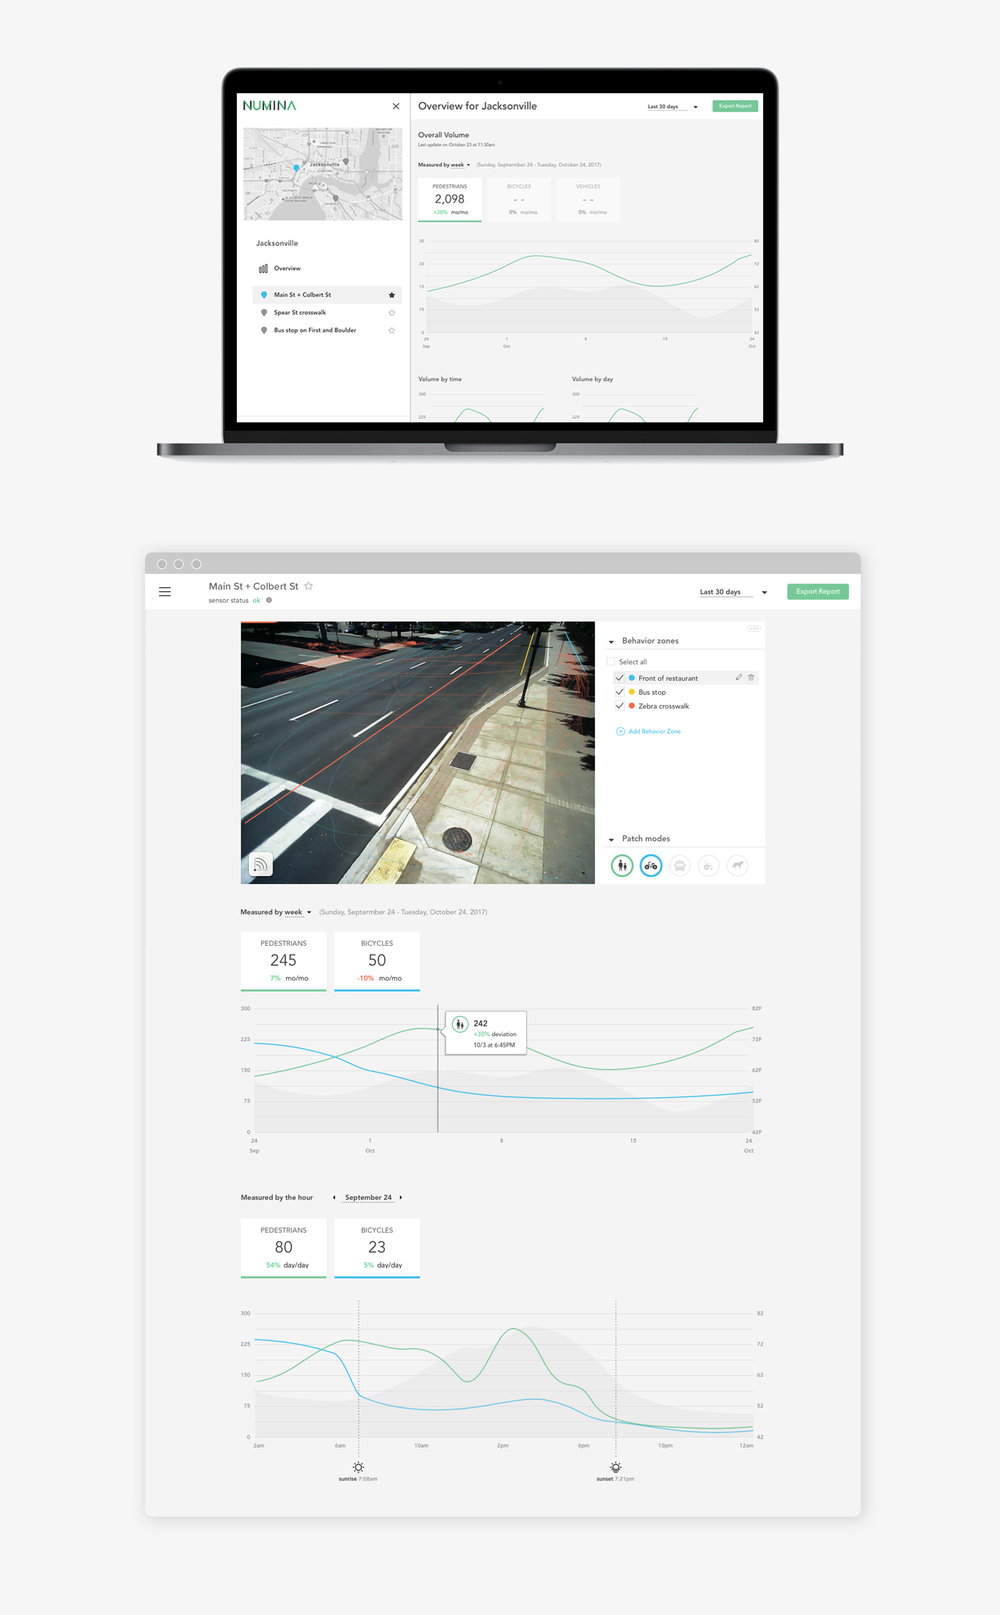 Salazar_Numina_Dashboard_Overview.png